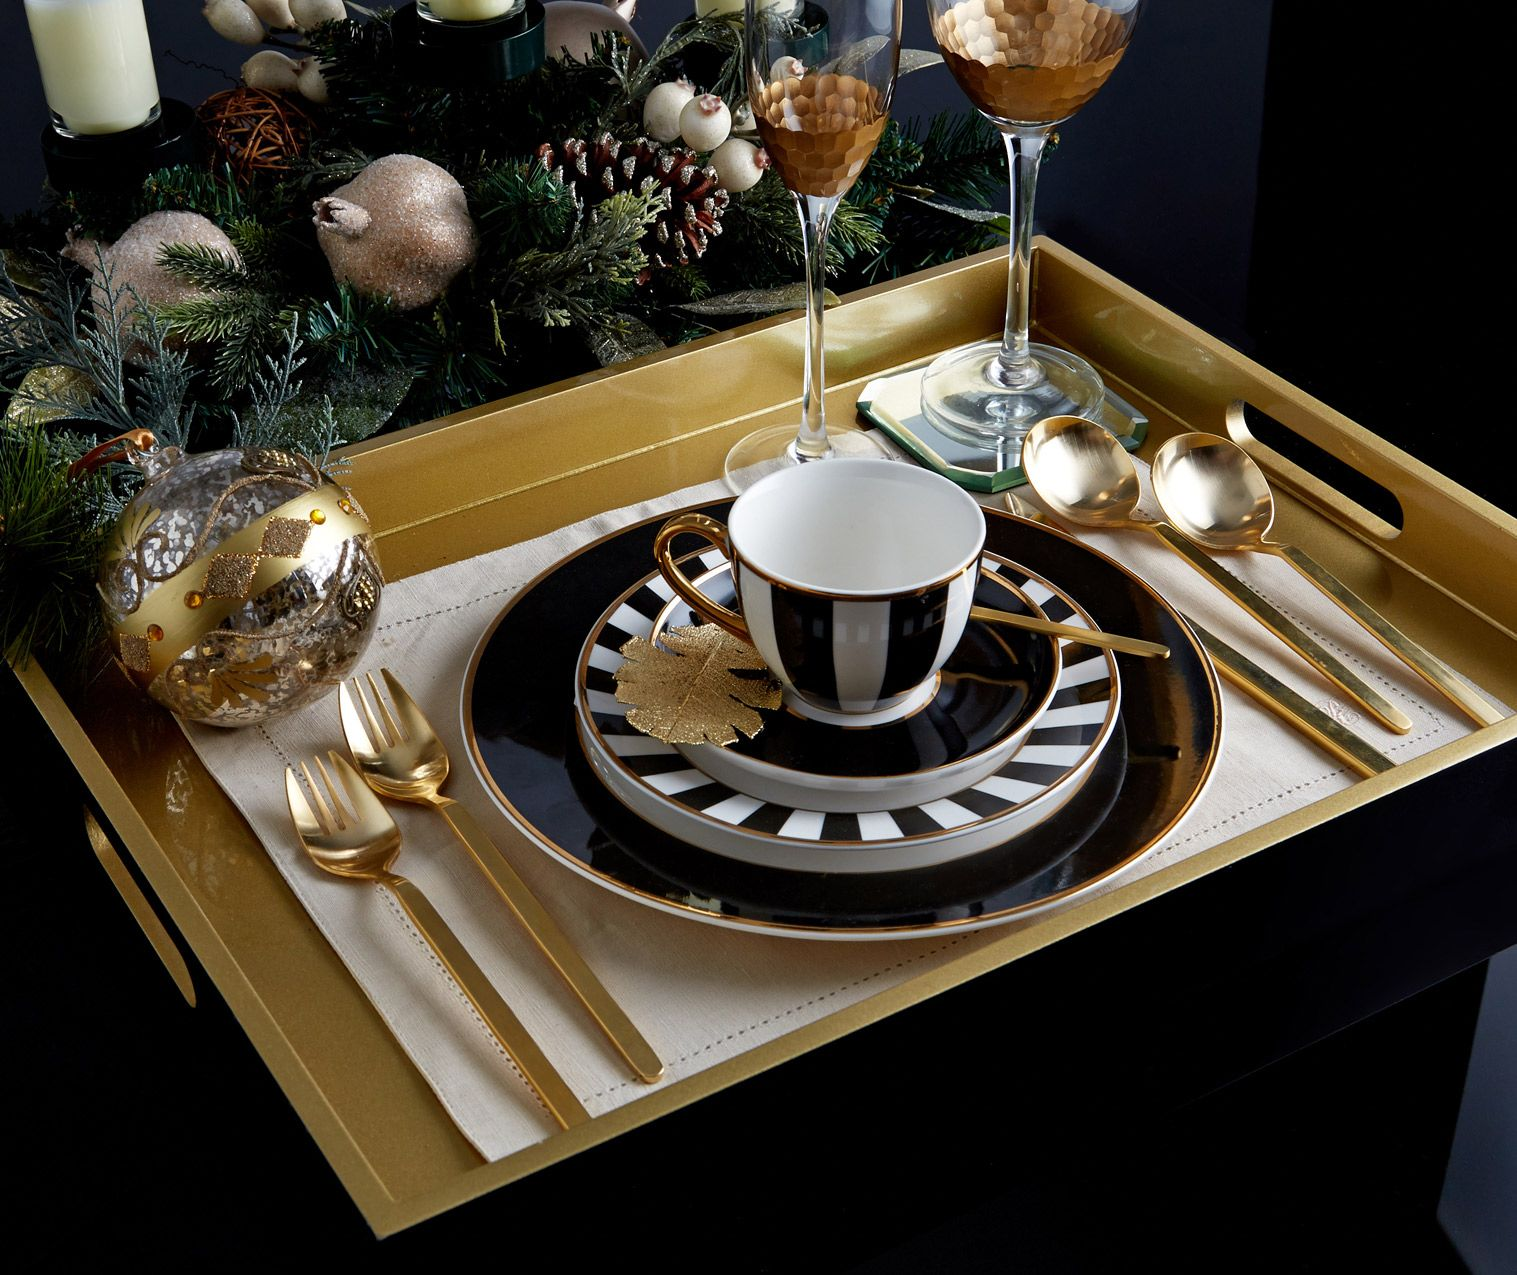 Dunnes Store Christmas Decorations: Luxury Tableware By Paul Costelloe Living, Exclusively At